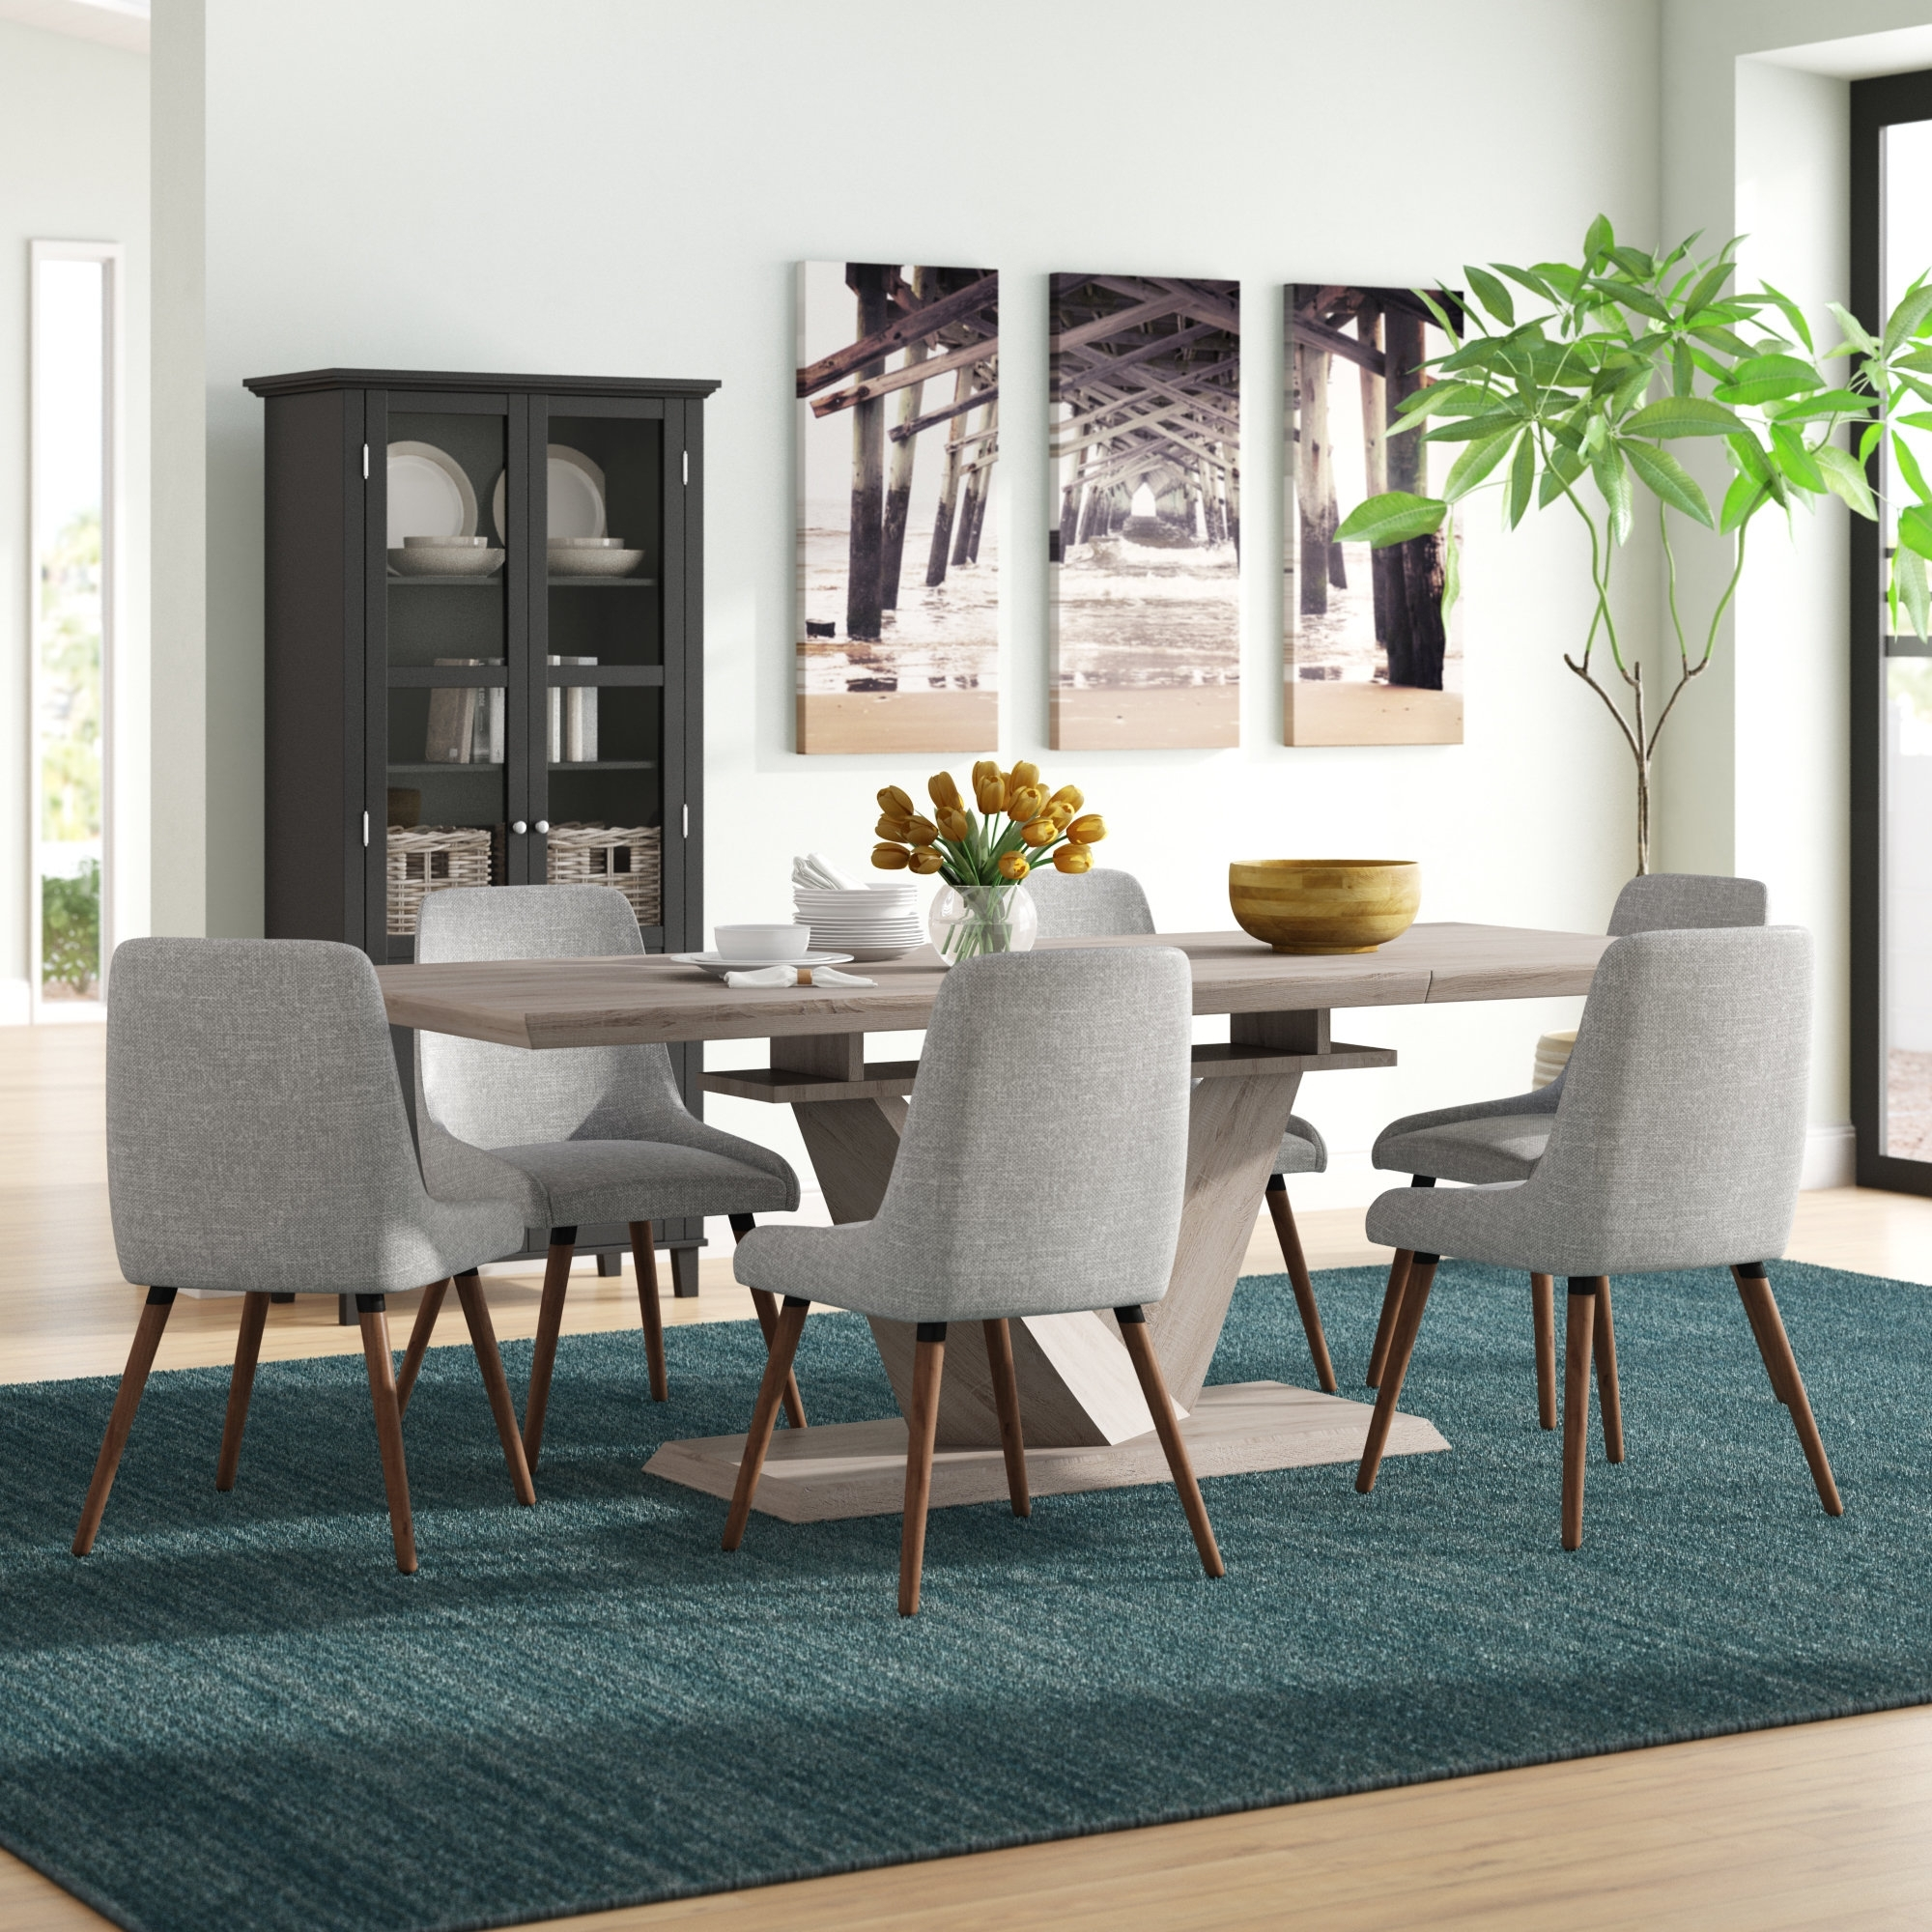 Simmers 7 Piece Dining Set | Allmodern Throughout Most Current Walden 9 Piece Extension Dining Sets (Image 11 of 20)